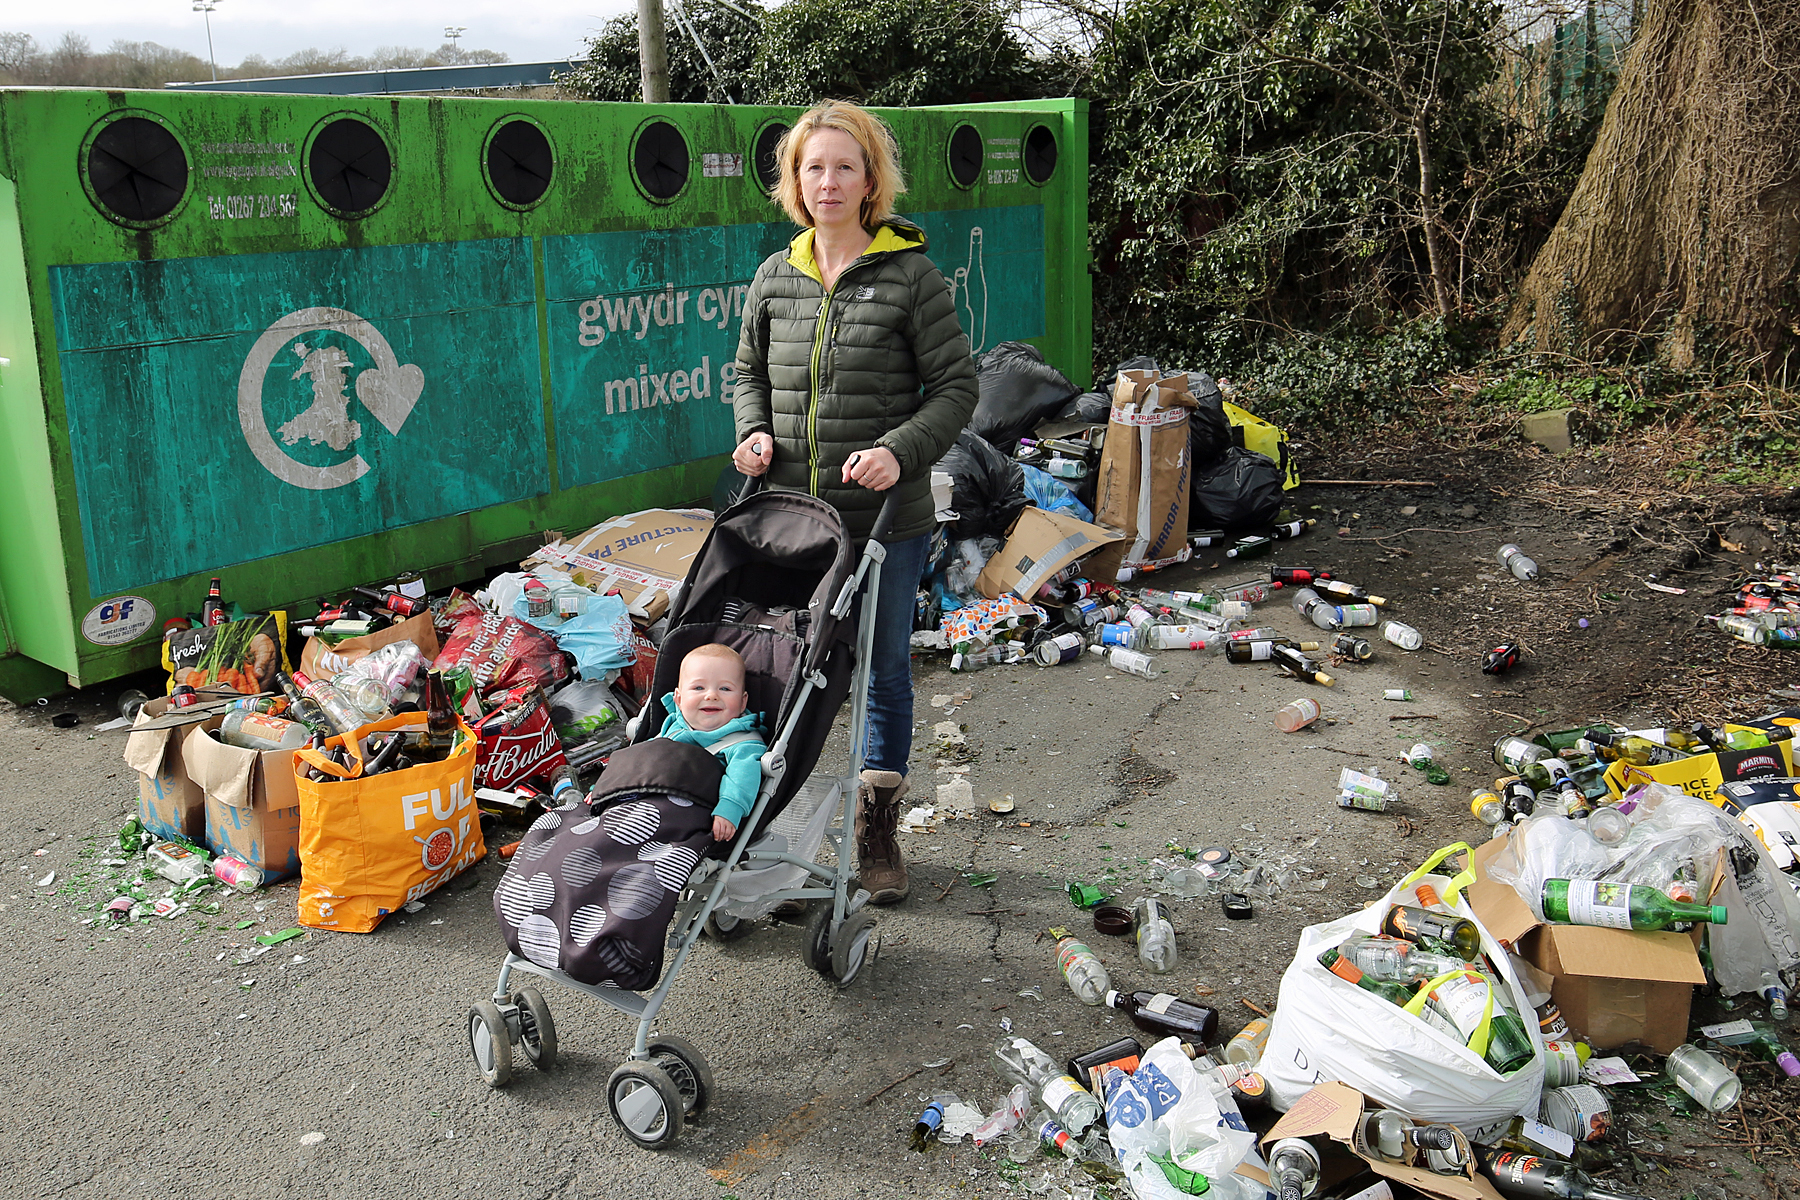 Cara Sanderson and six-month-old Jacob in the glass-strewn recycling area at Newcastle Emlyn. PICTURE: Barry Adams